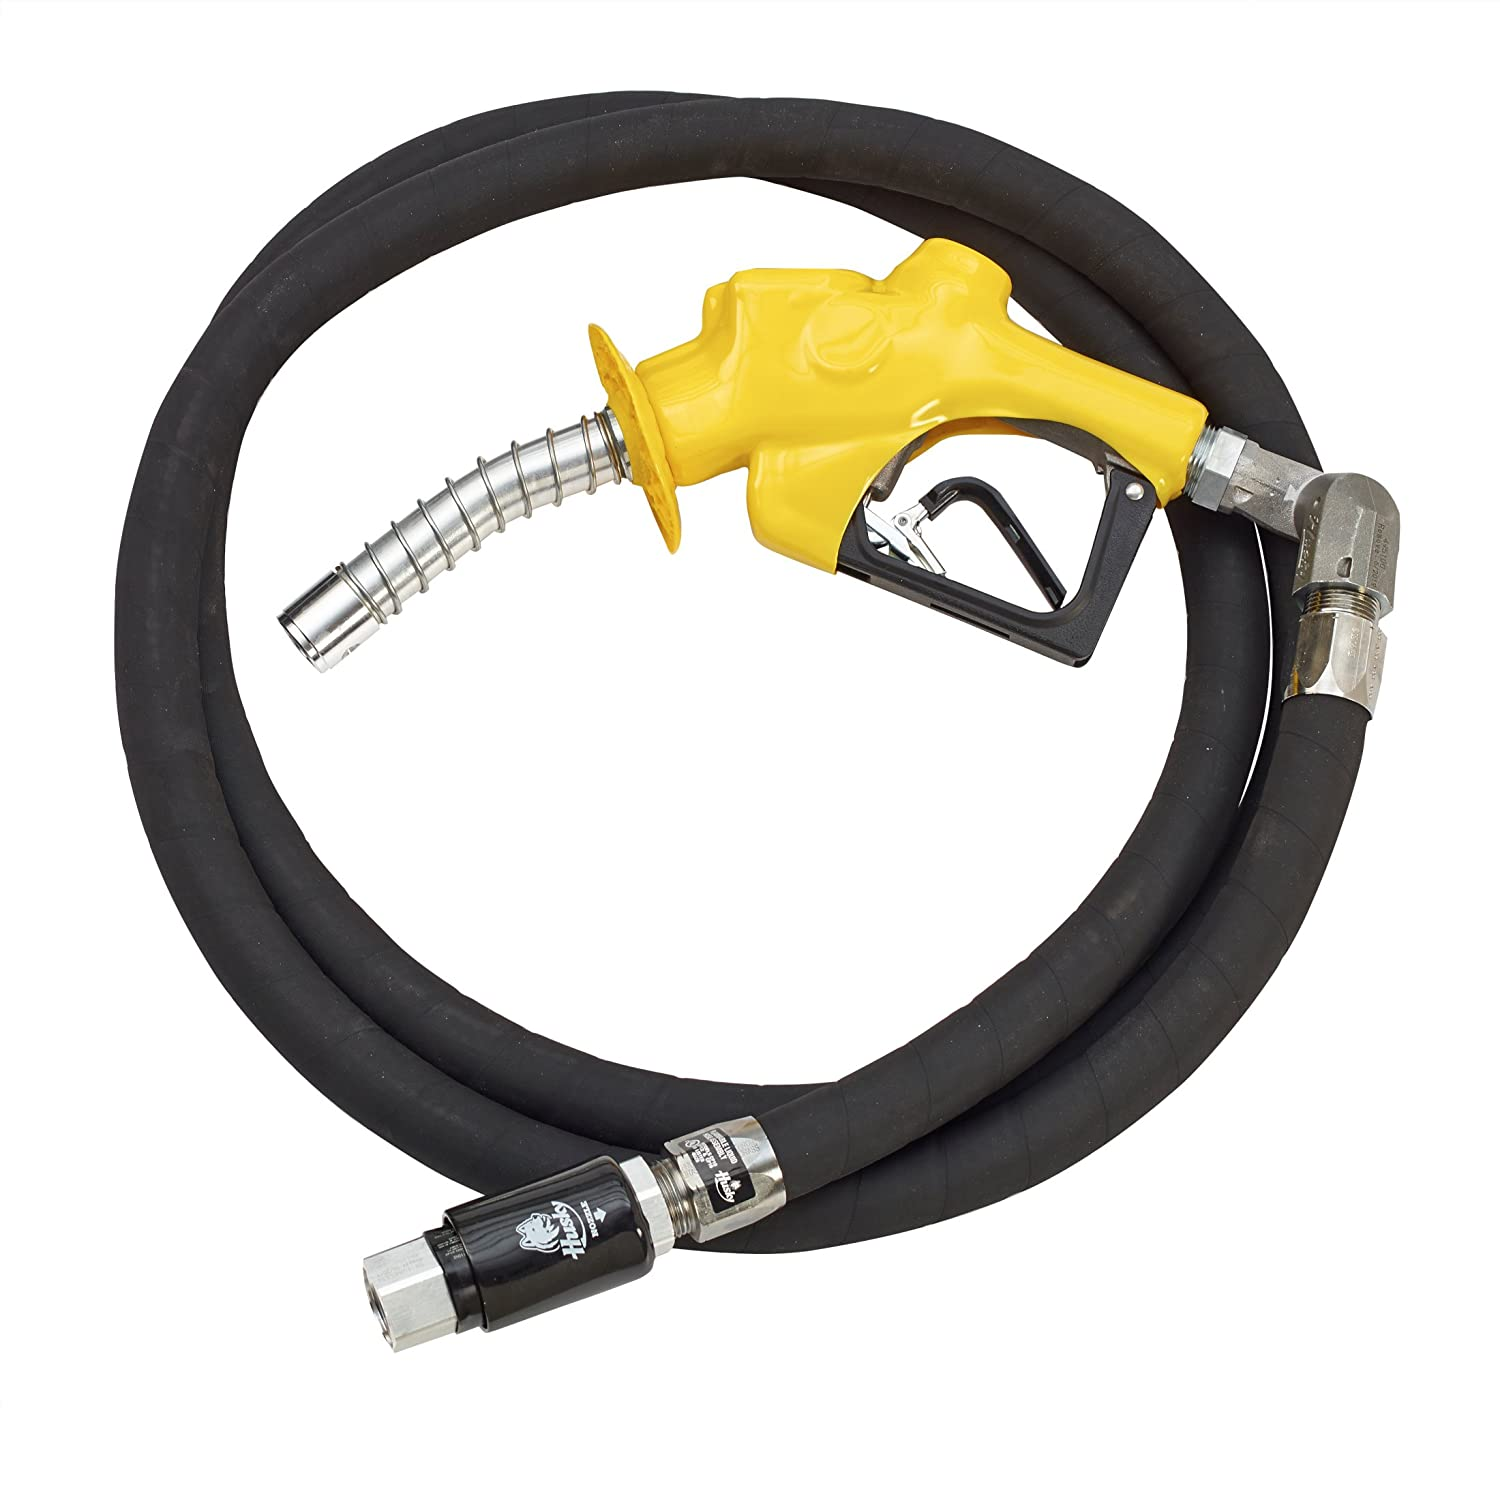 Husky 010481-05 VIIIS Heavy Duty Pressure Activated Diesel Nozzle with Waffle Splash Guard, Yellow